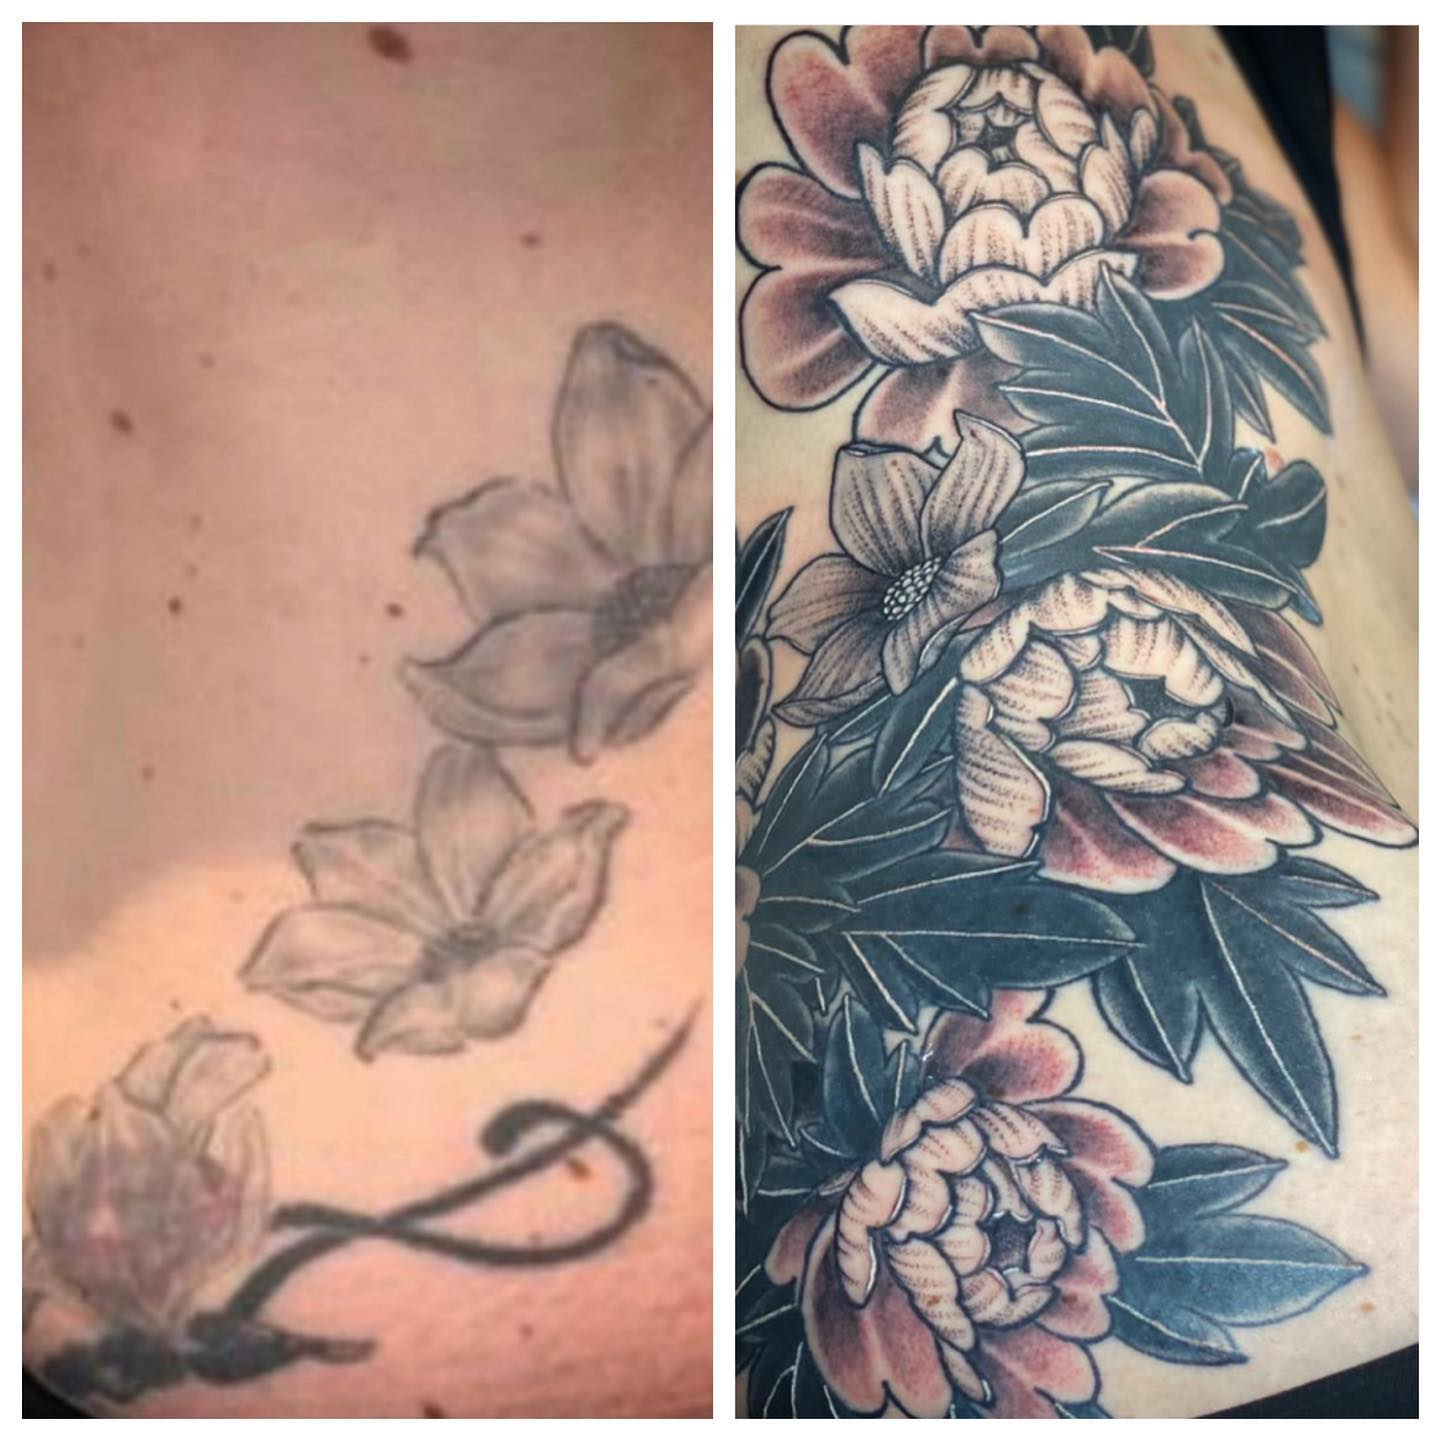 Before and After!! Another amazing coverup by @gerikramertattoos